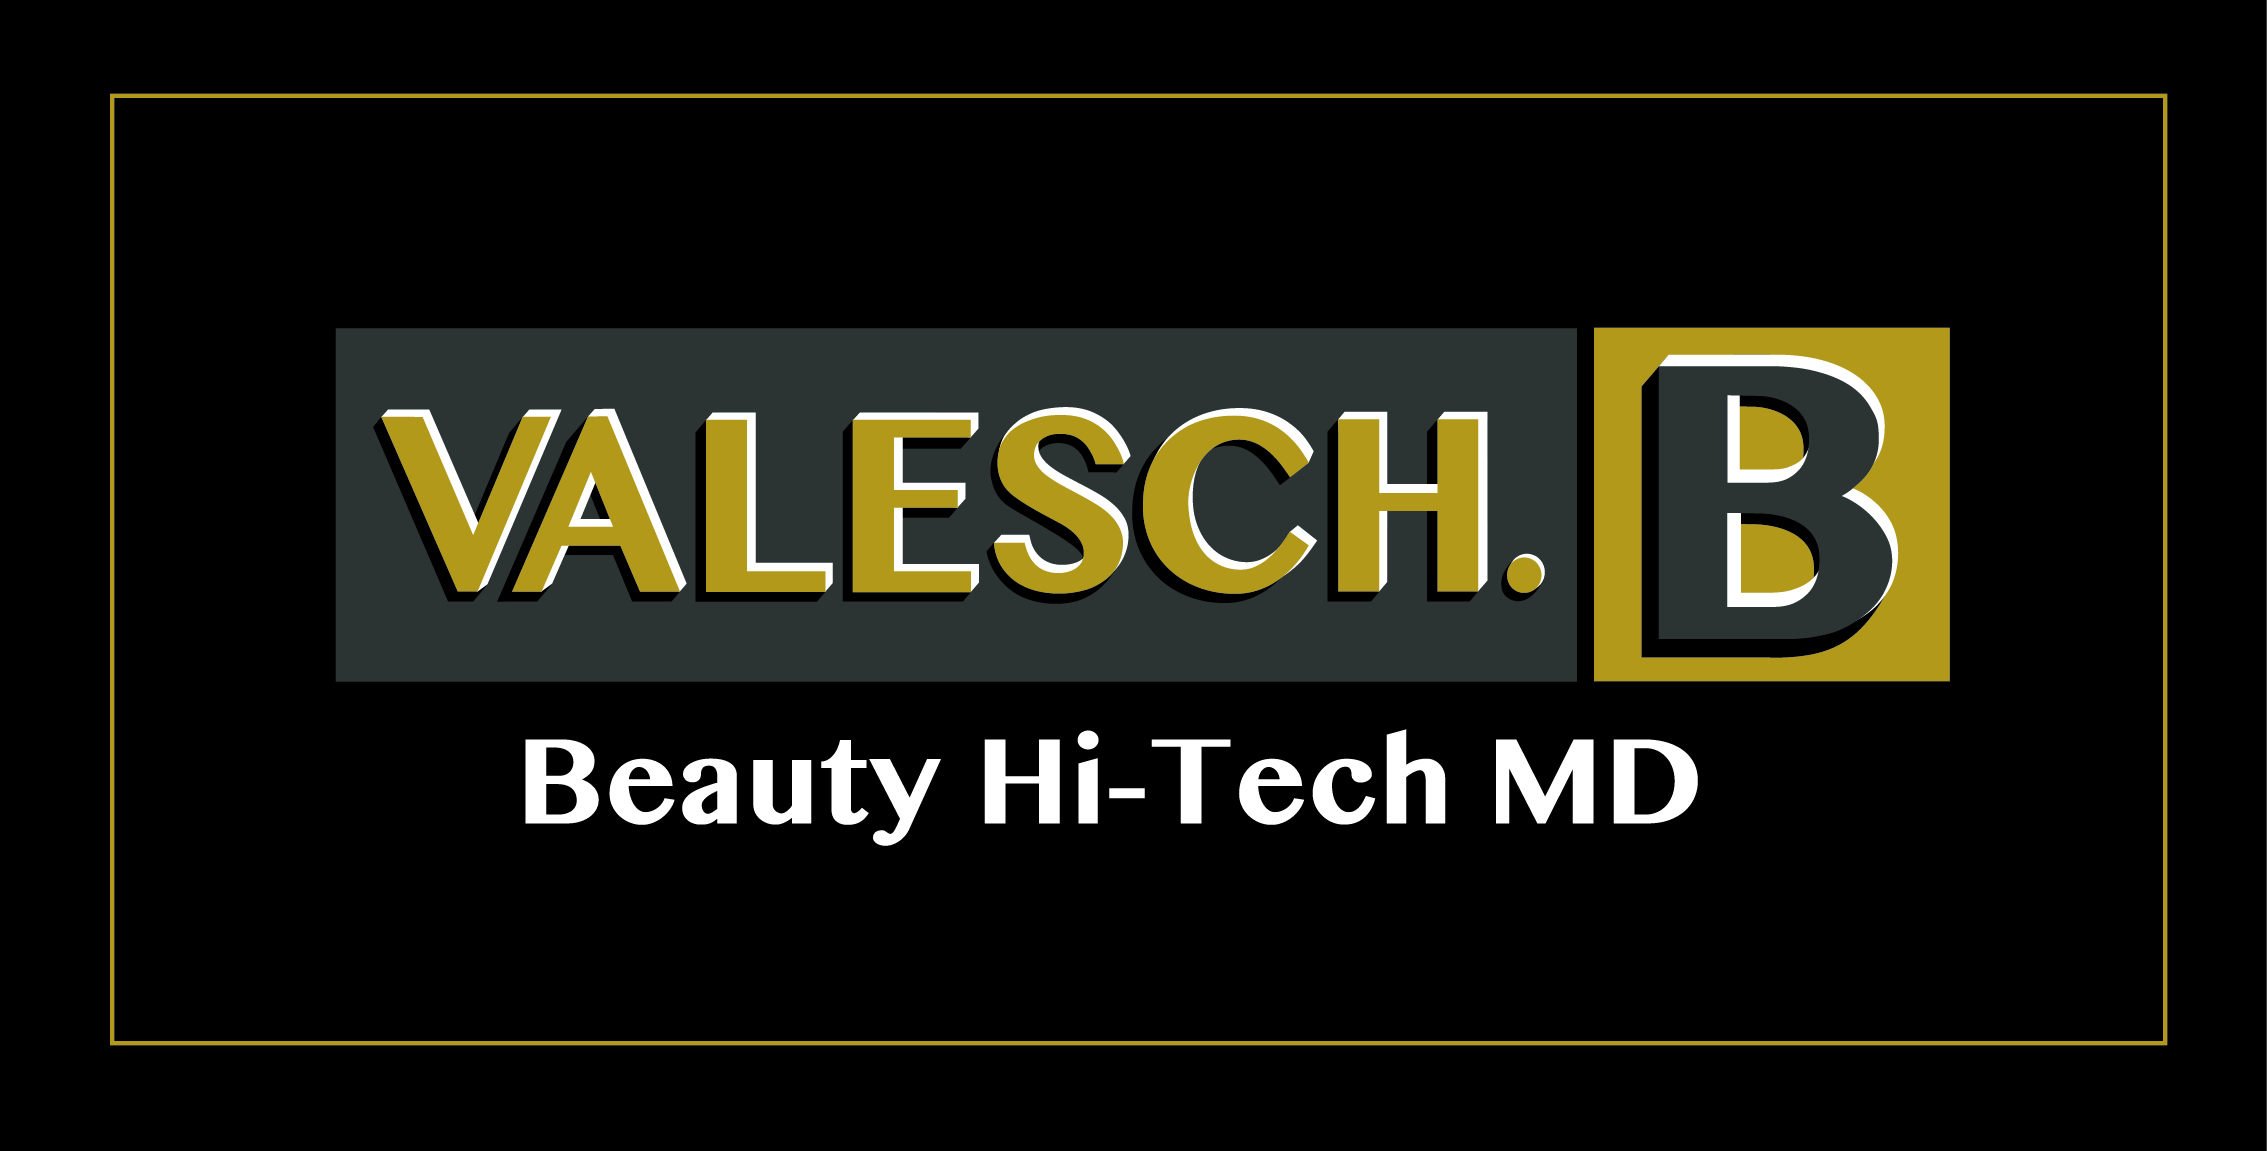 ValeschB Beauty Hi tech